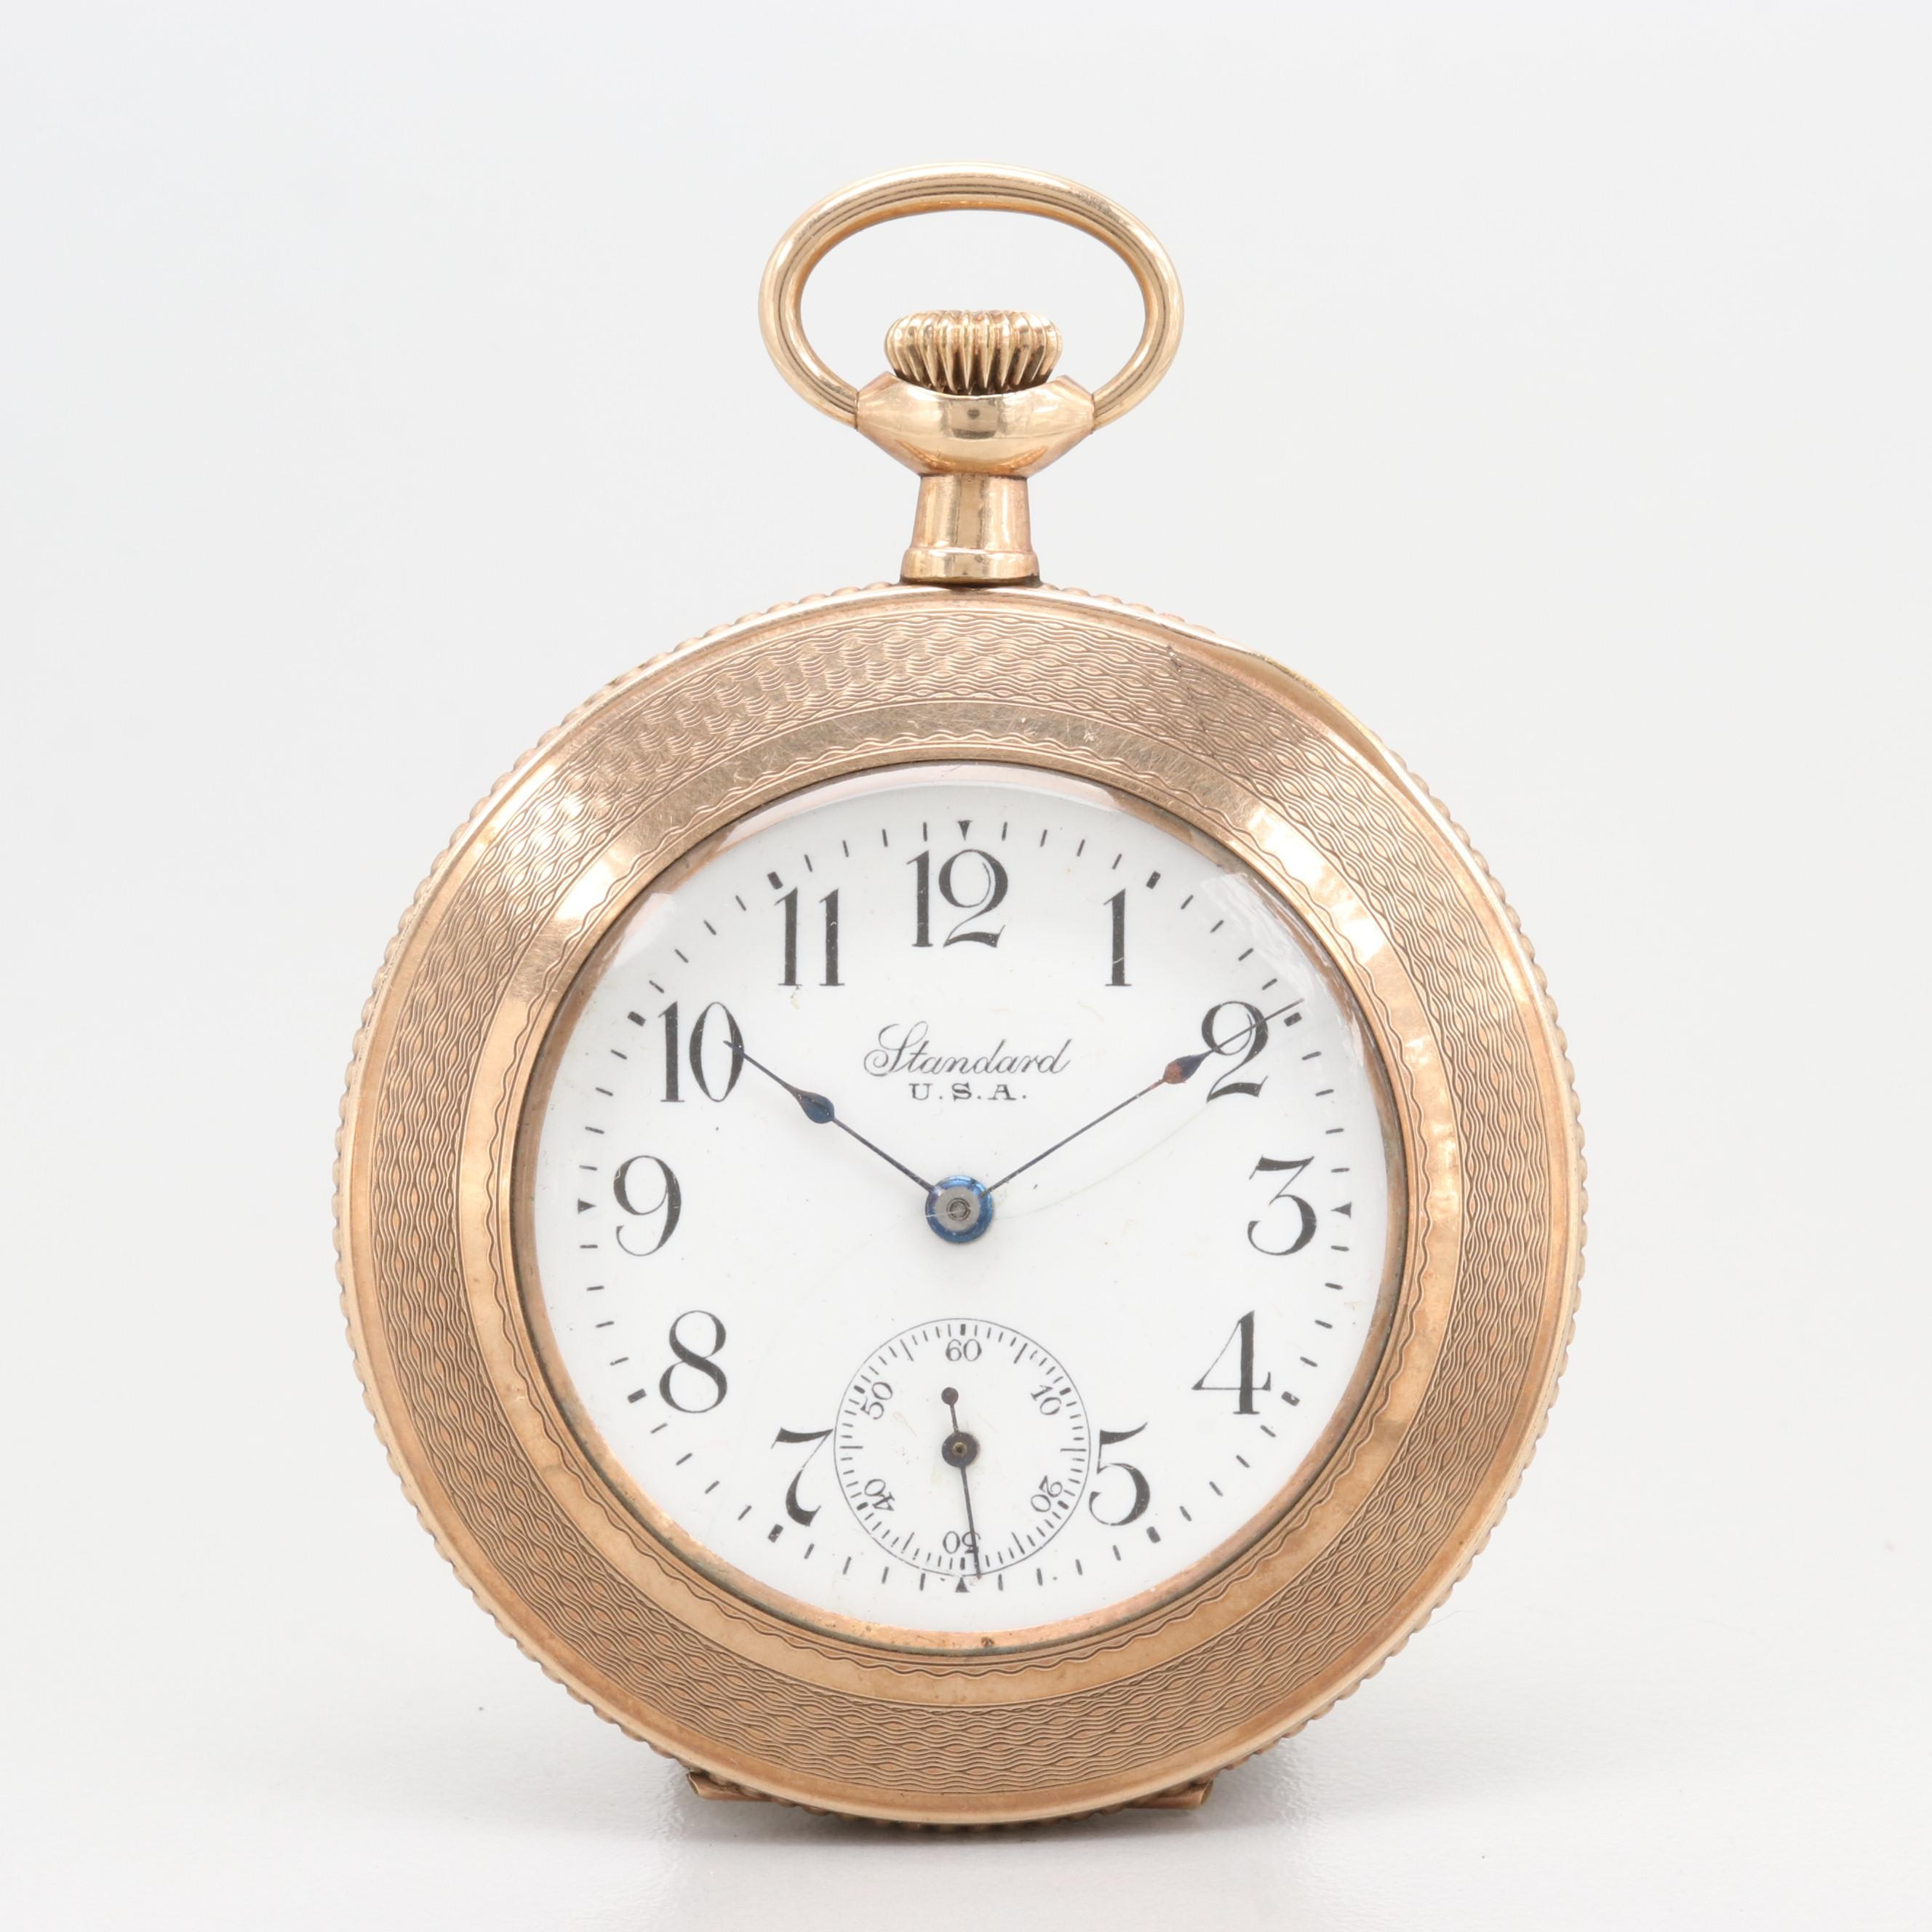 Standard U.S.A. Pocket Watch With Unique Gold Filled Case Circa 1887